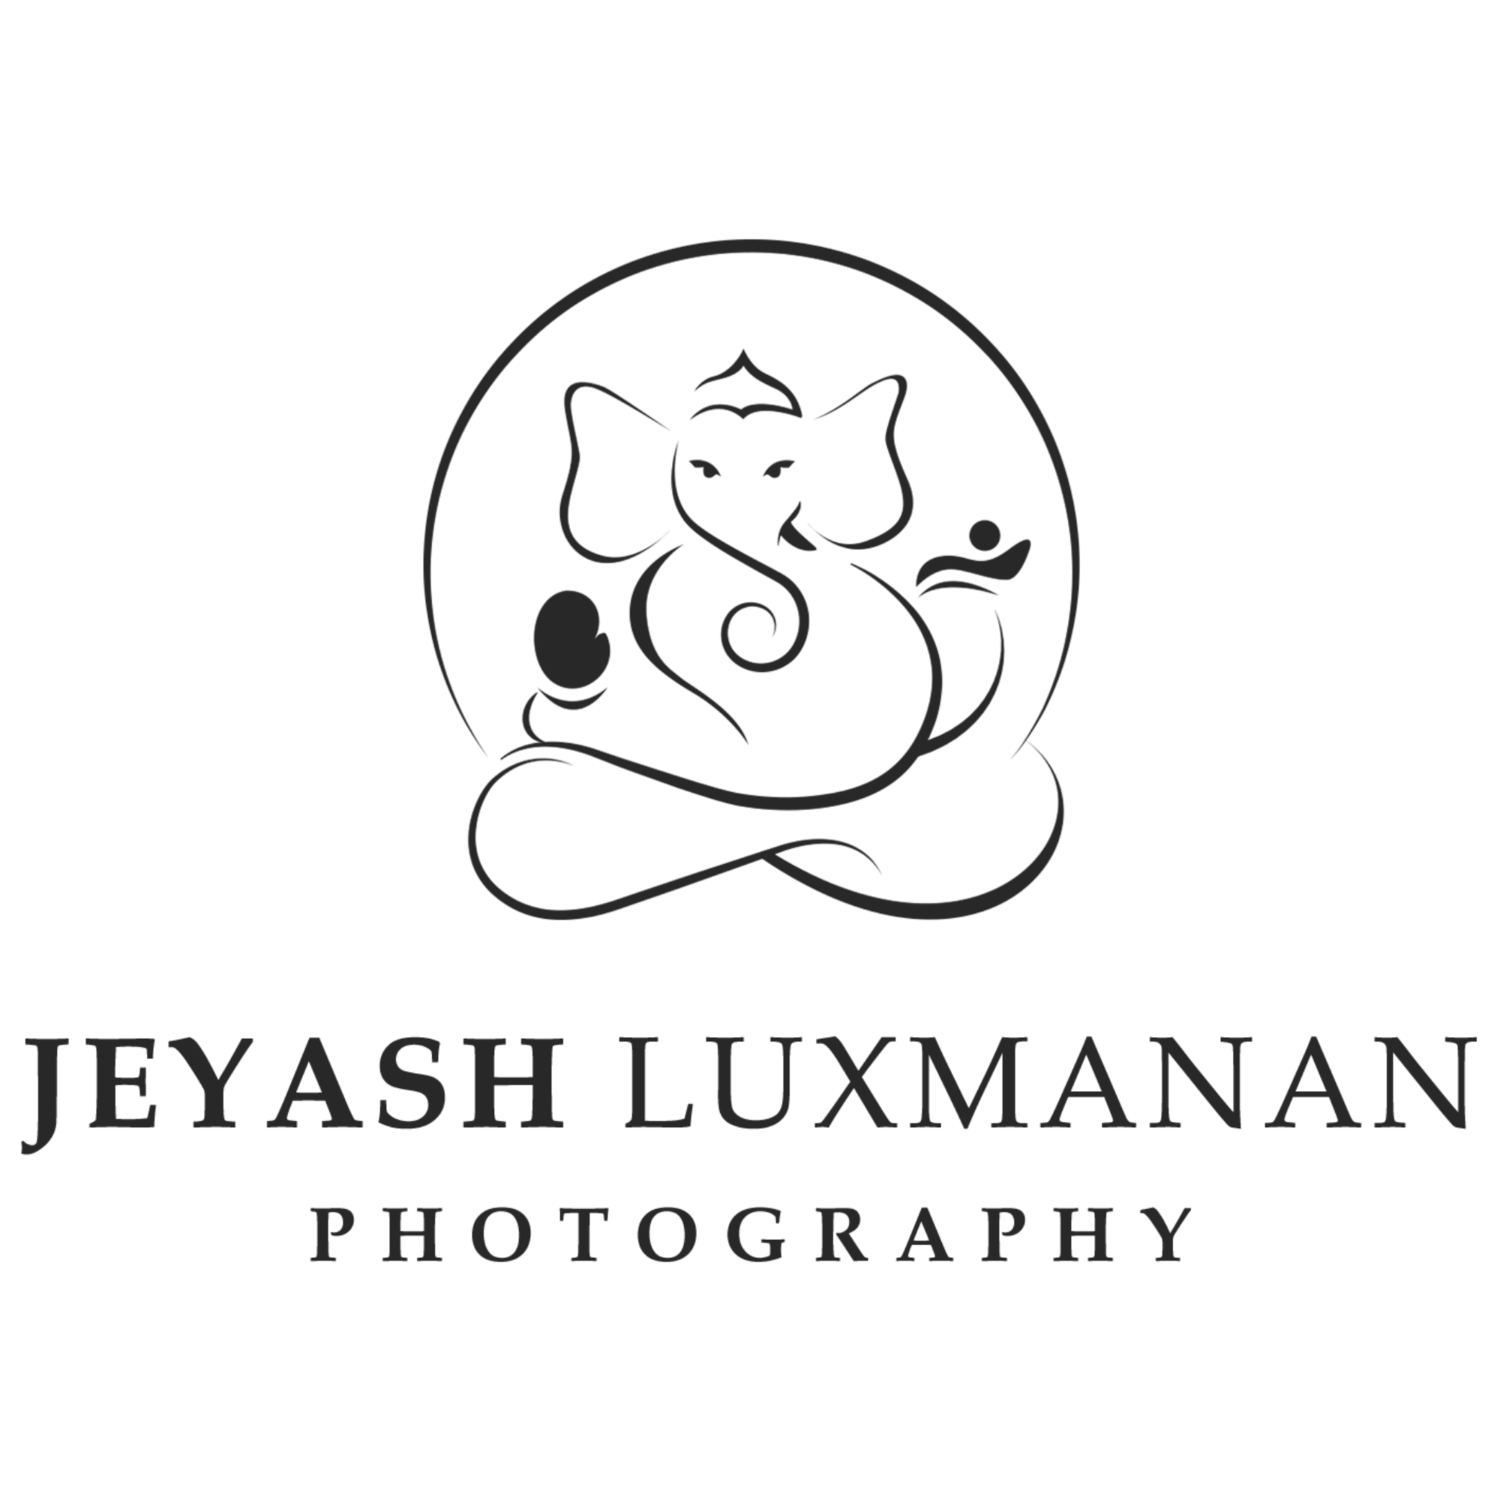 Jeyash Luxmanan Photography